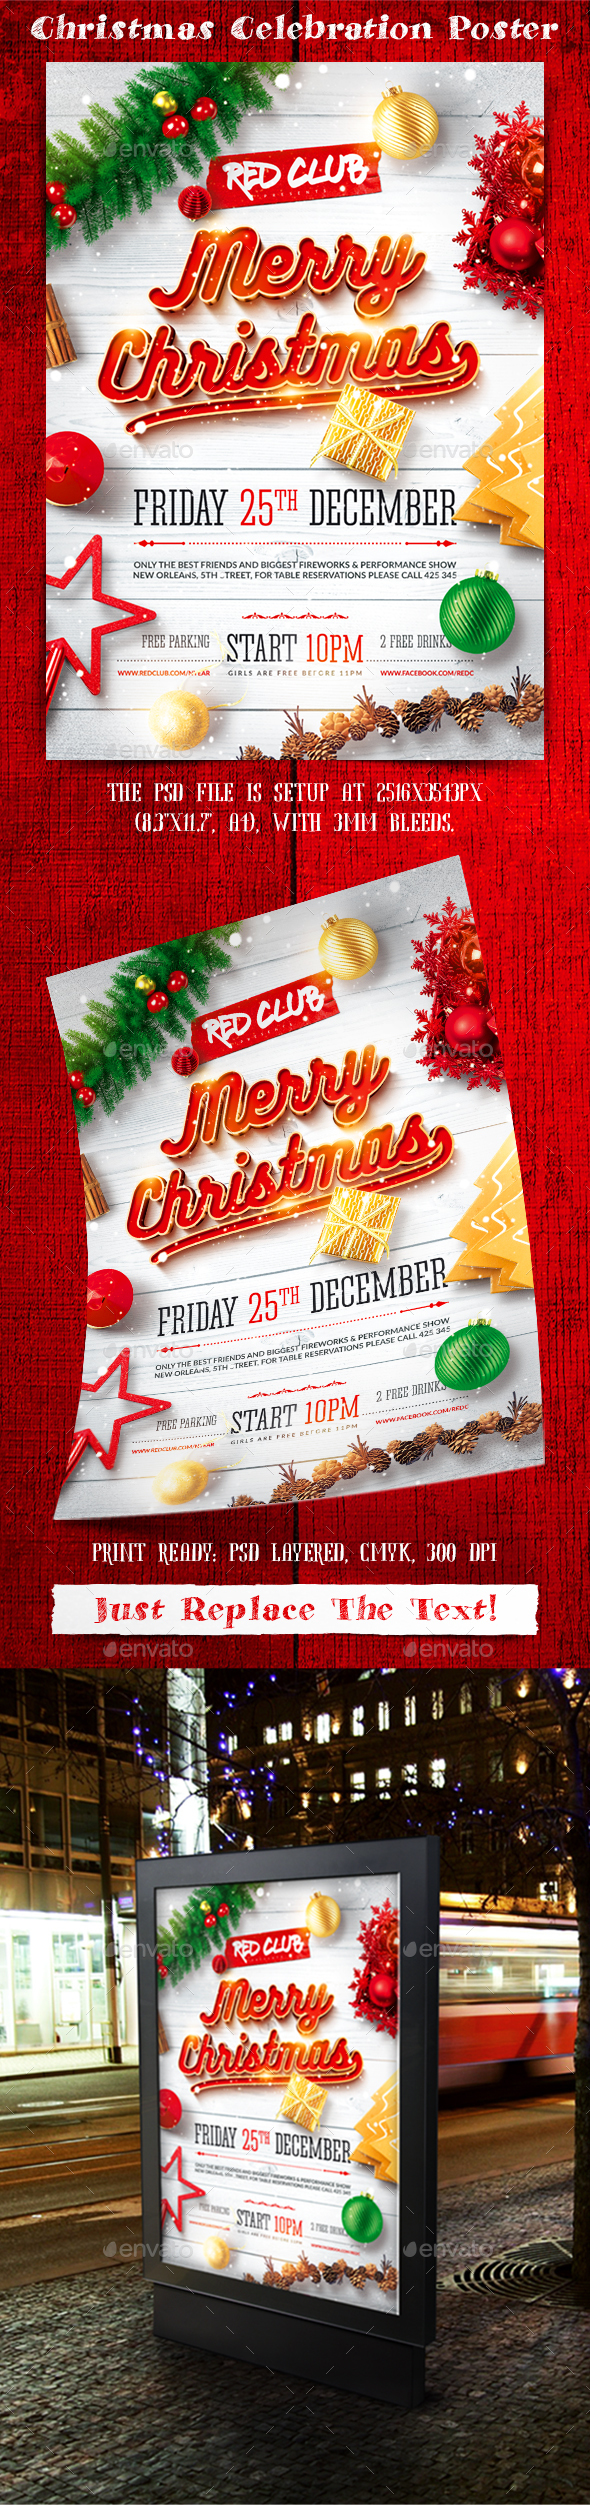 Christmas Celebration Poster - Holidays Events